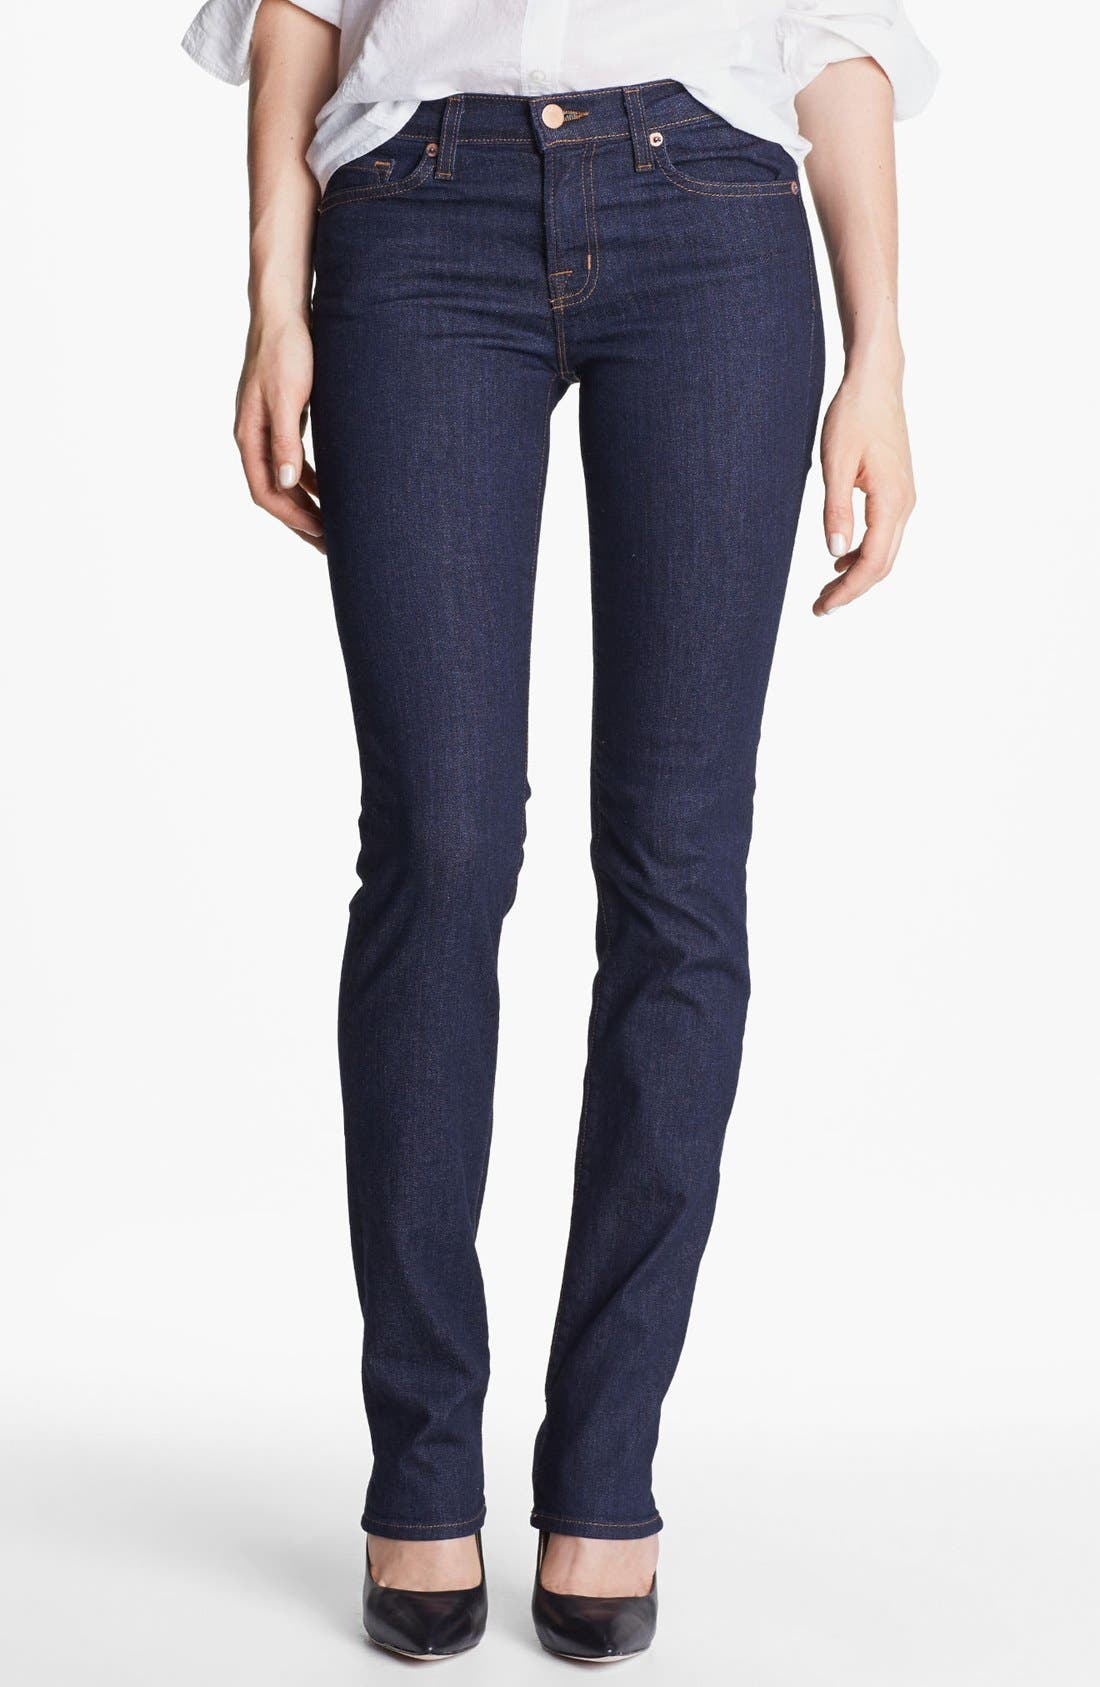 Alternate Image 1 Selected - J Brand '814' Mid-Rise Cigarette Leg Jeans (Pure)